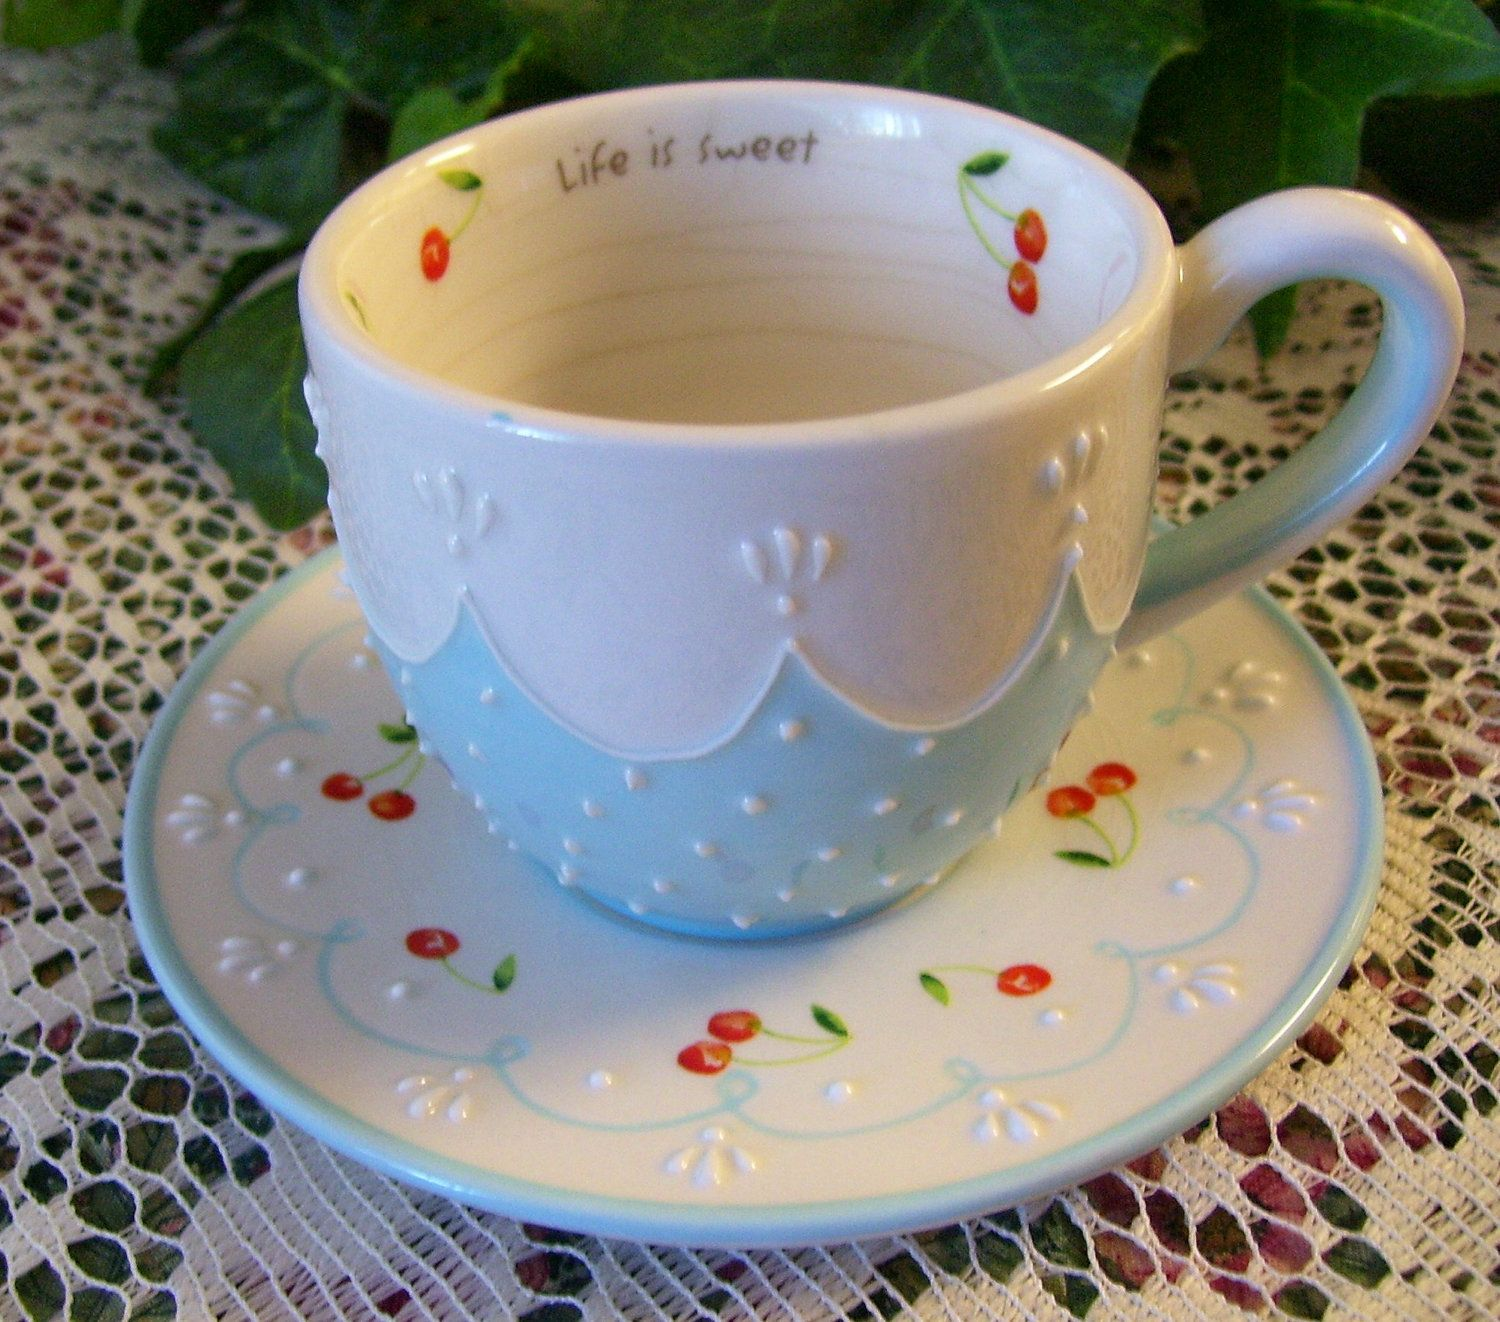 Vintage Teacup & Saucer Blue, White and Red Cherries 'Life is Sweet' REDUCED PRICE. $5.50, via Etsy.